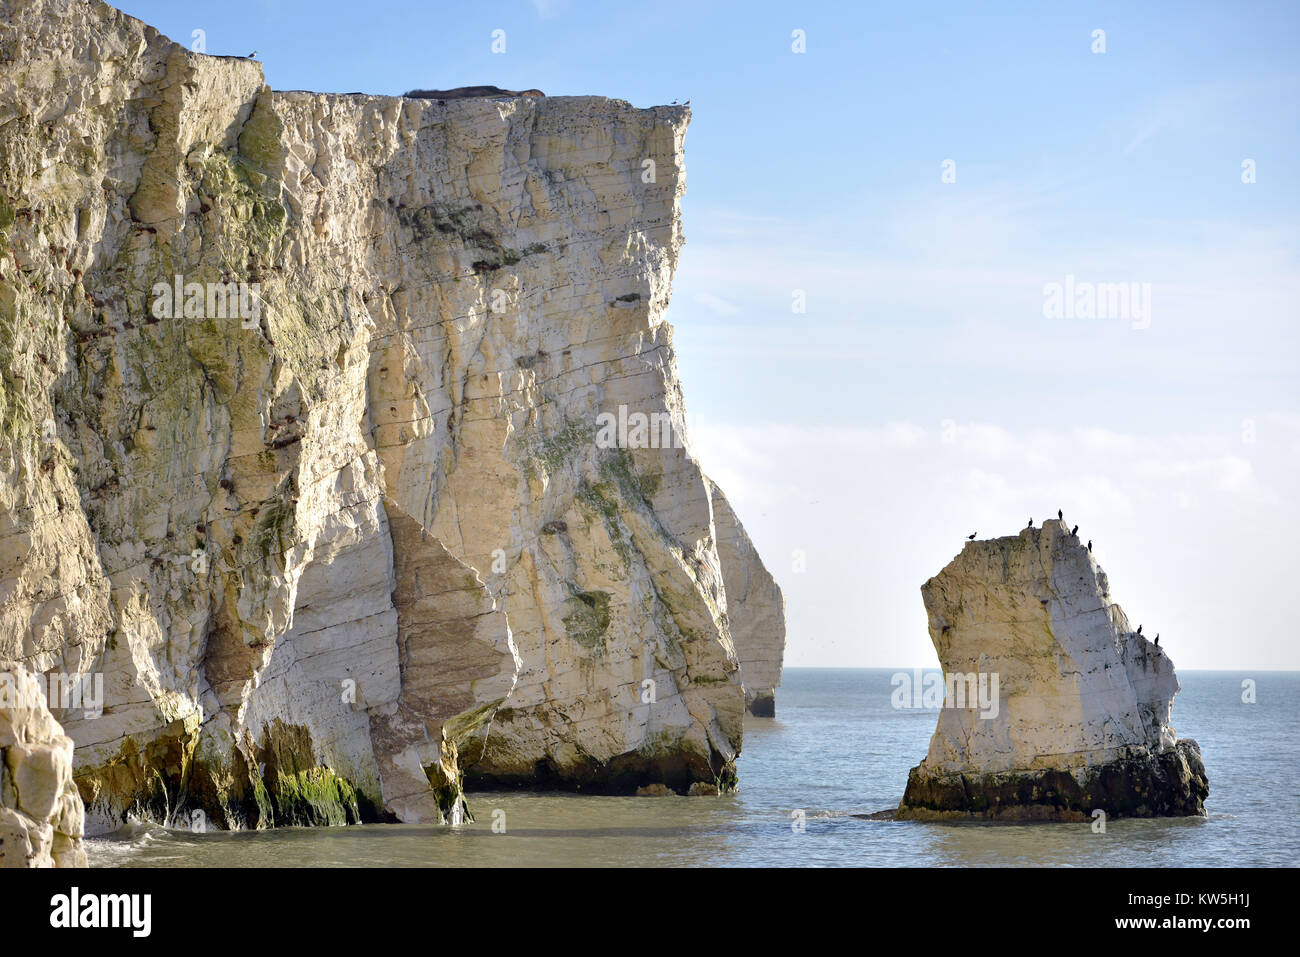 Chalk stack at Slash Point, Seaford, East Sussex - Stock Image